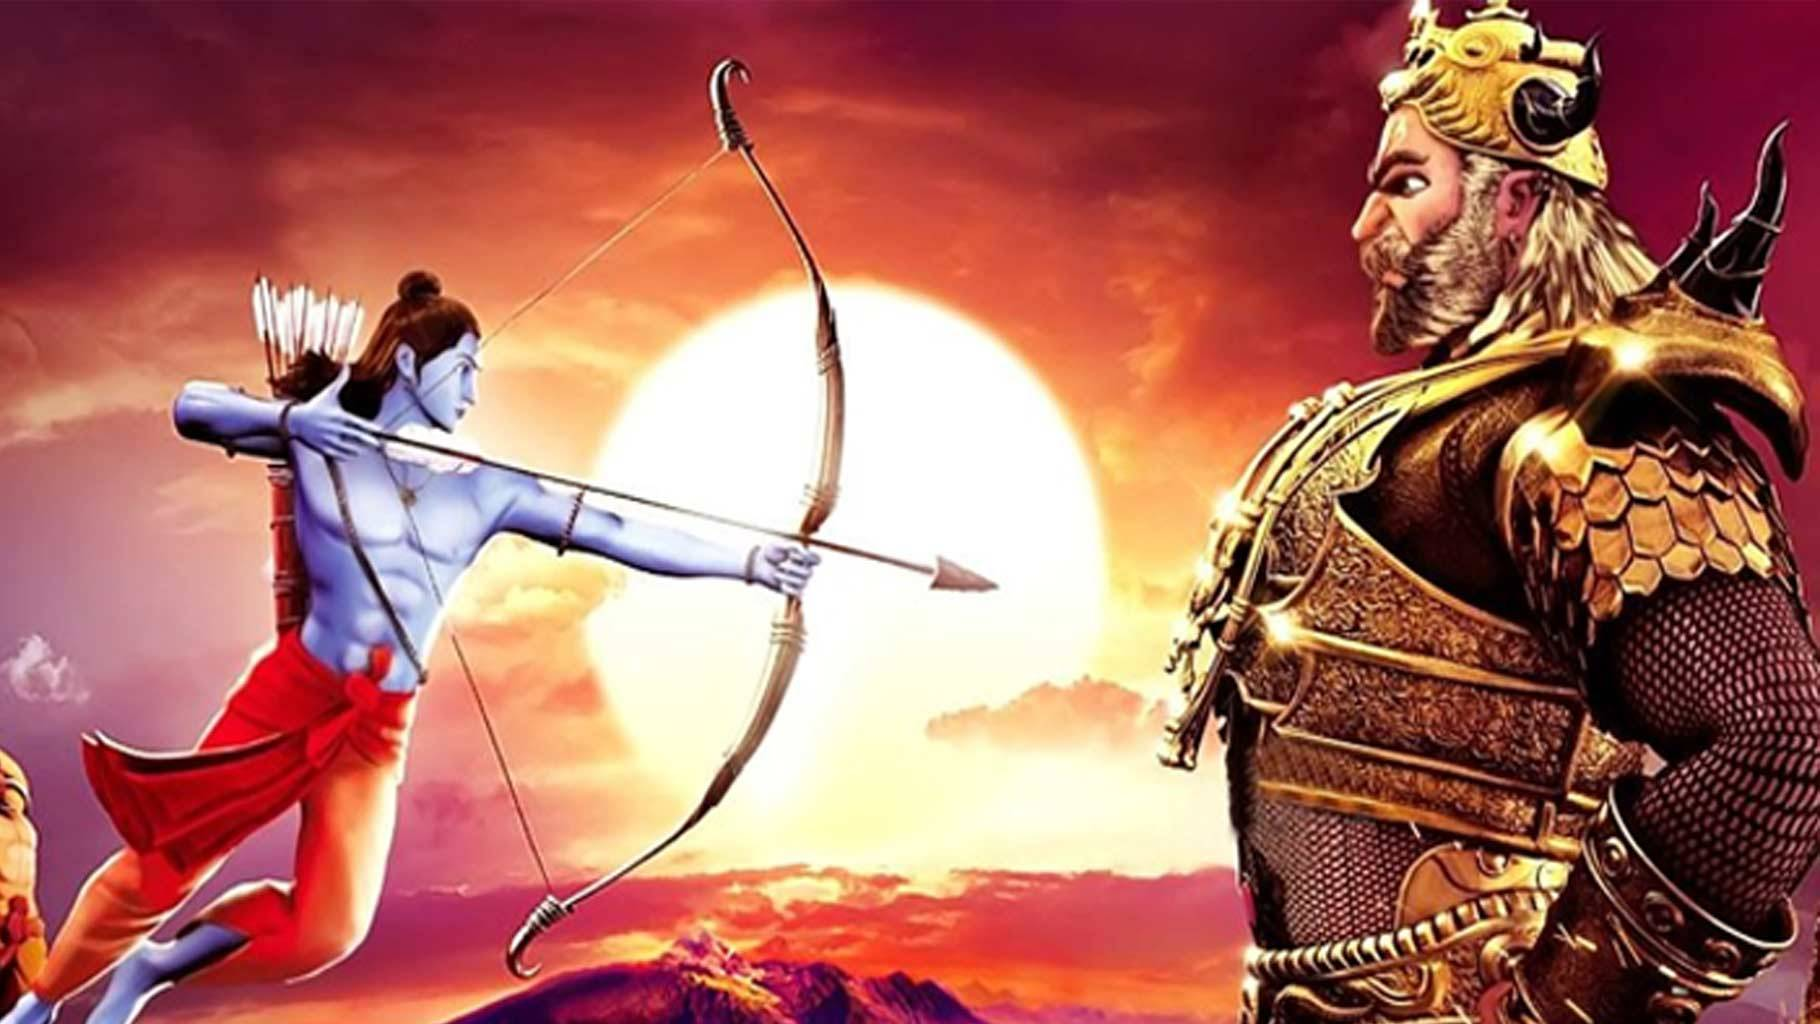 Image result for ra and ravan fight